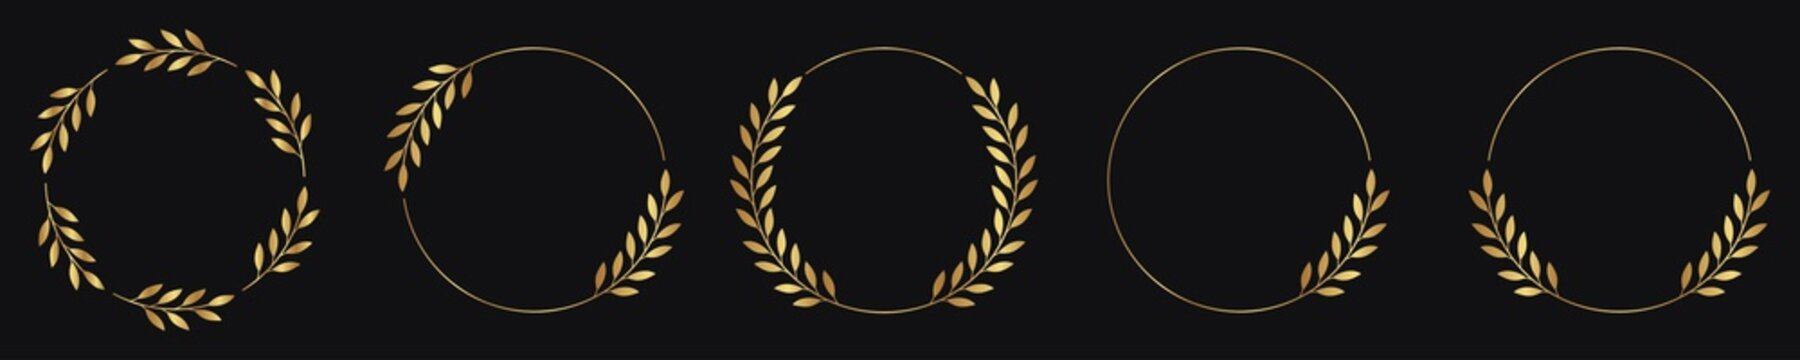 Set of laurel wreath circle borders with gold color. collection laurel leaves decorative elements. award, Leaves, invitation decoration, swirls, ornate. Vector icon illustration.